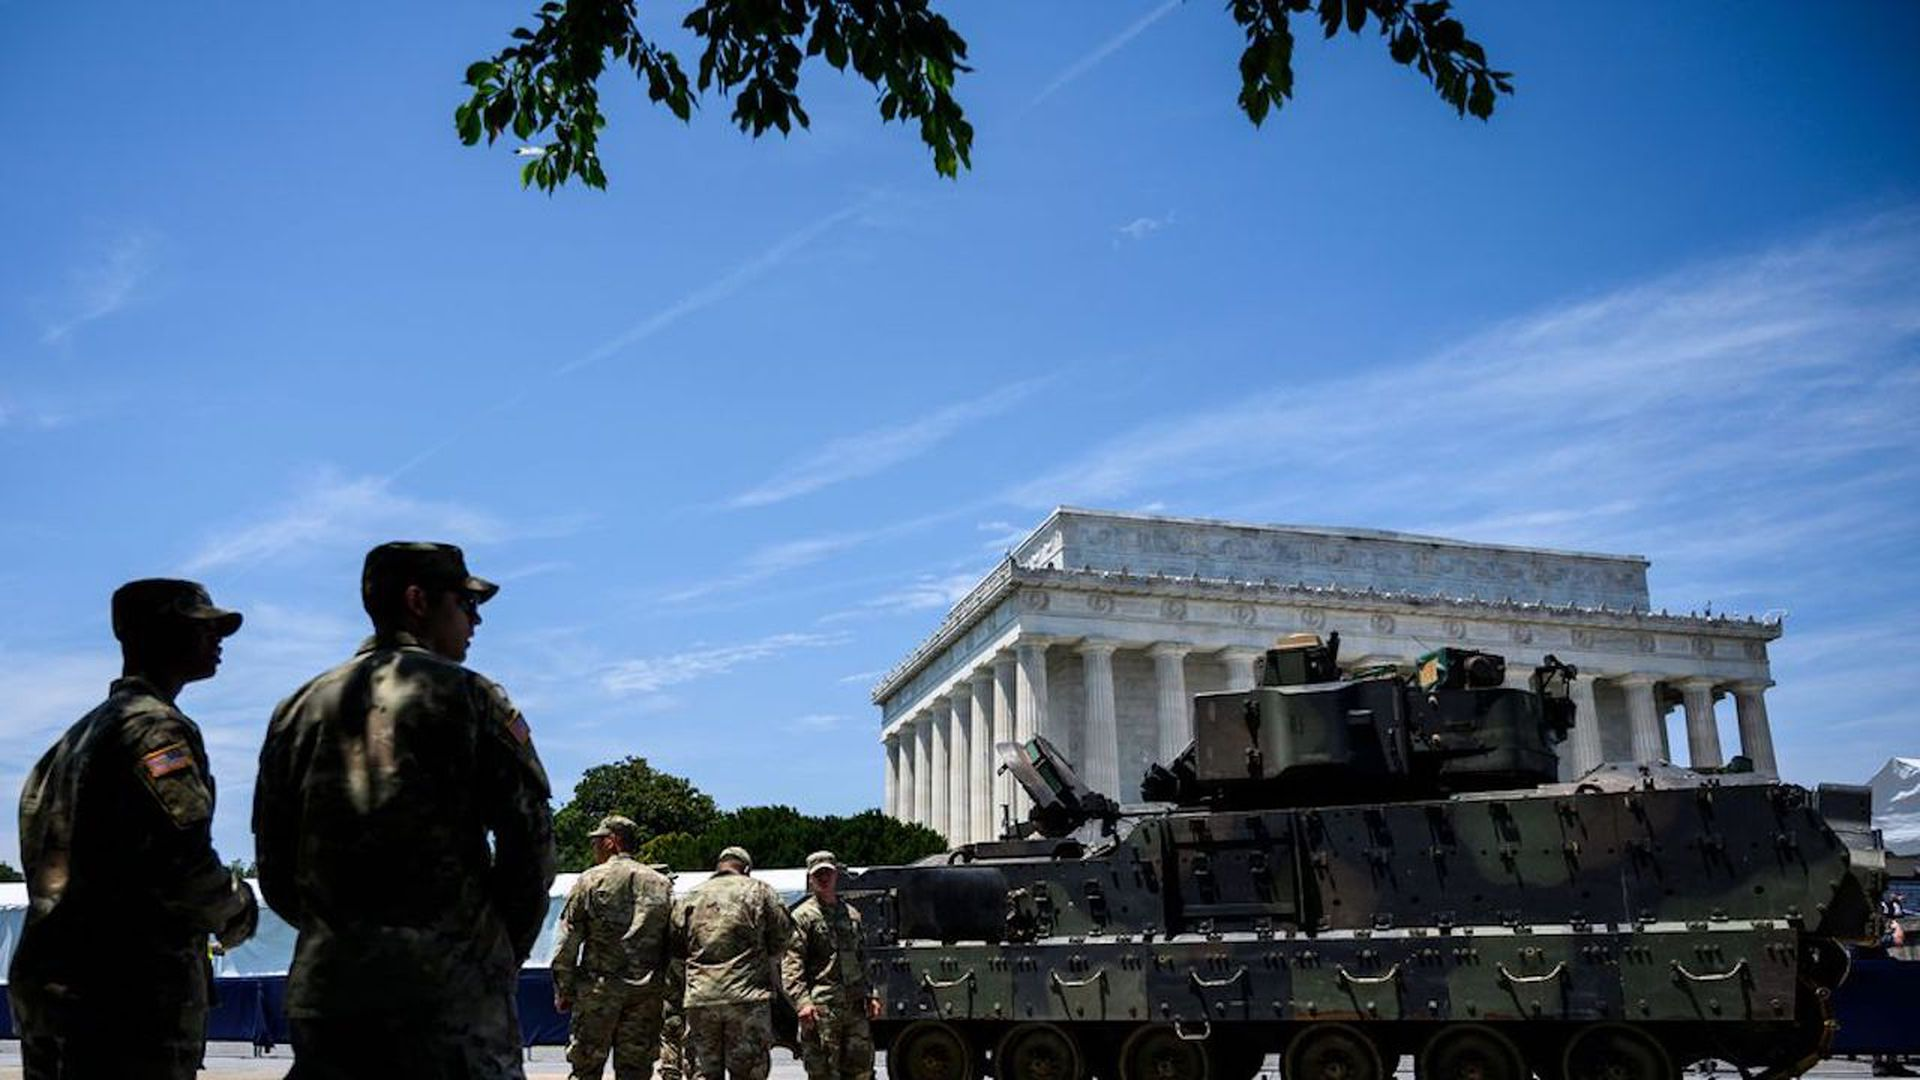 Tanks, missiles to be paraded through Washington for the 4th of July